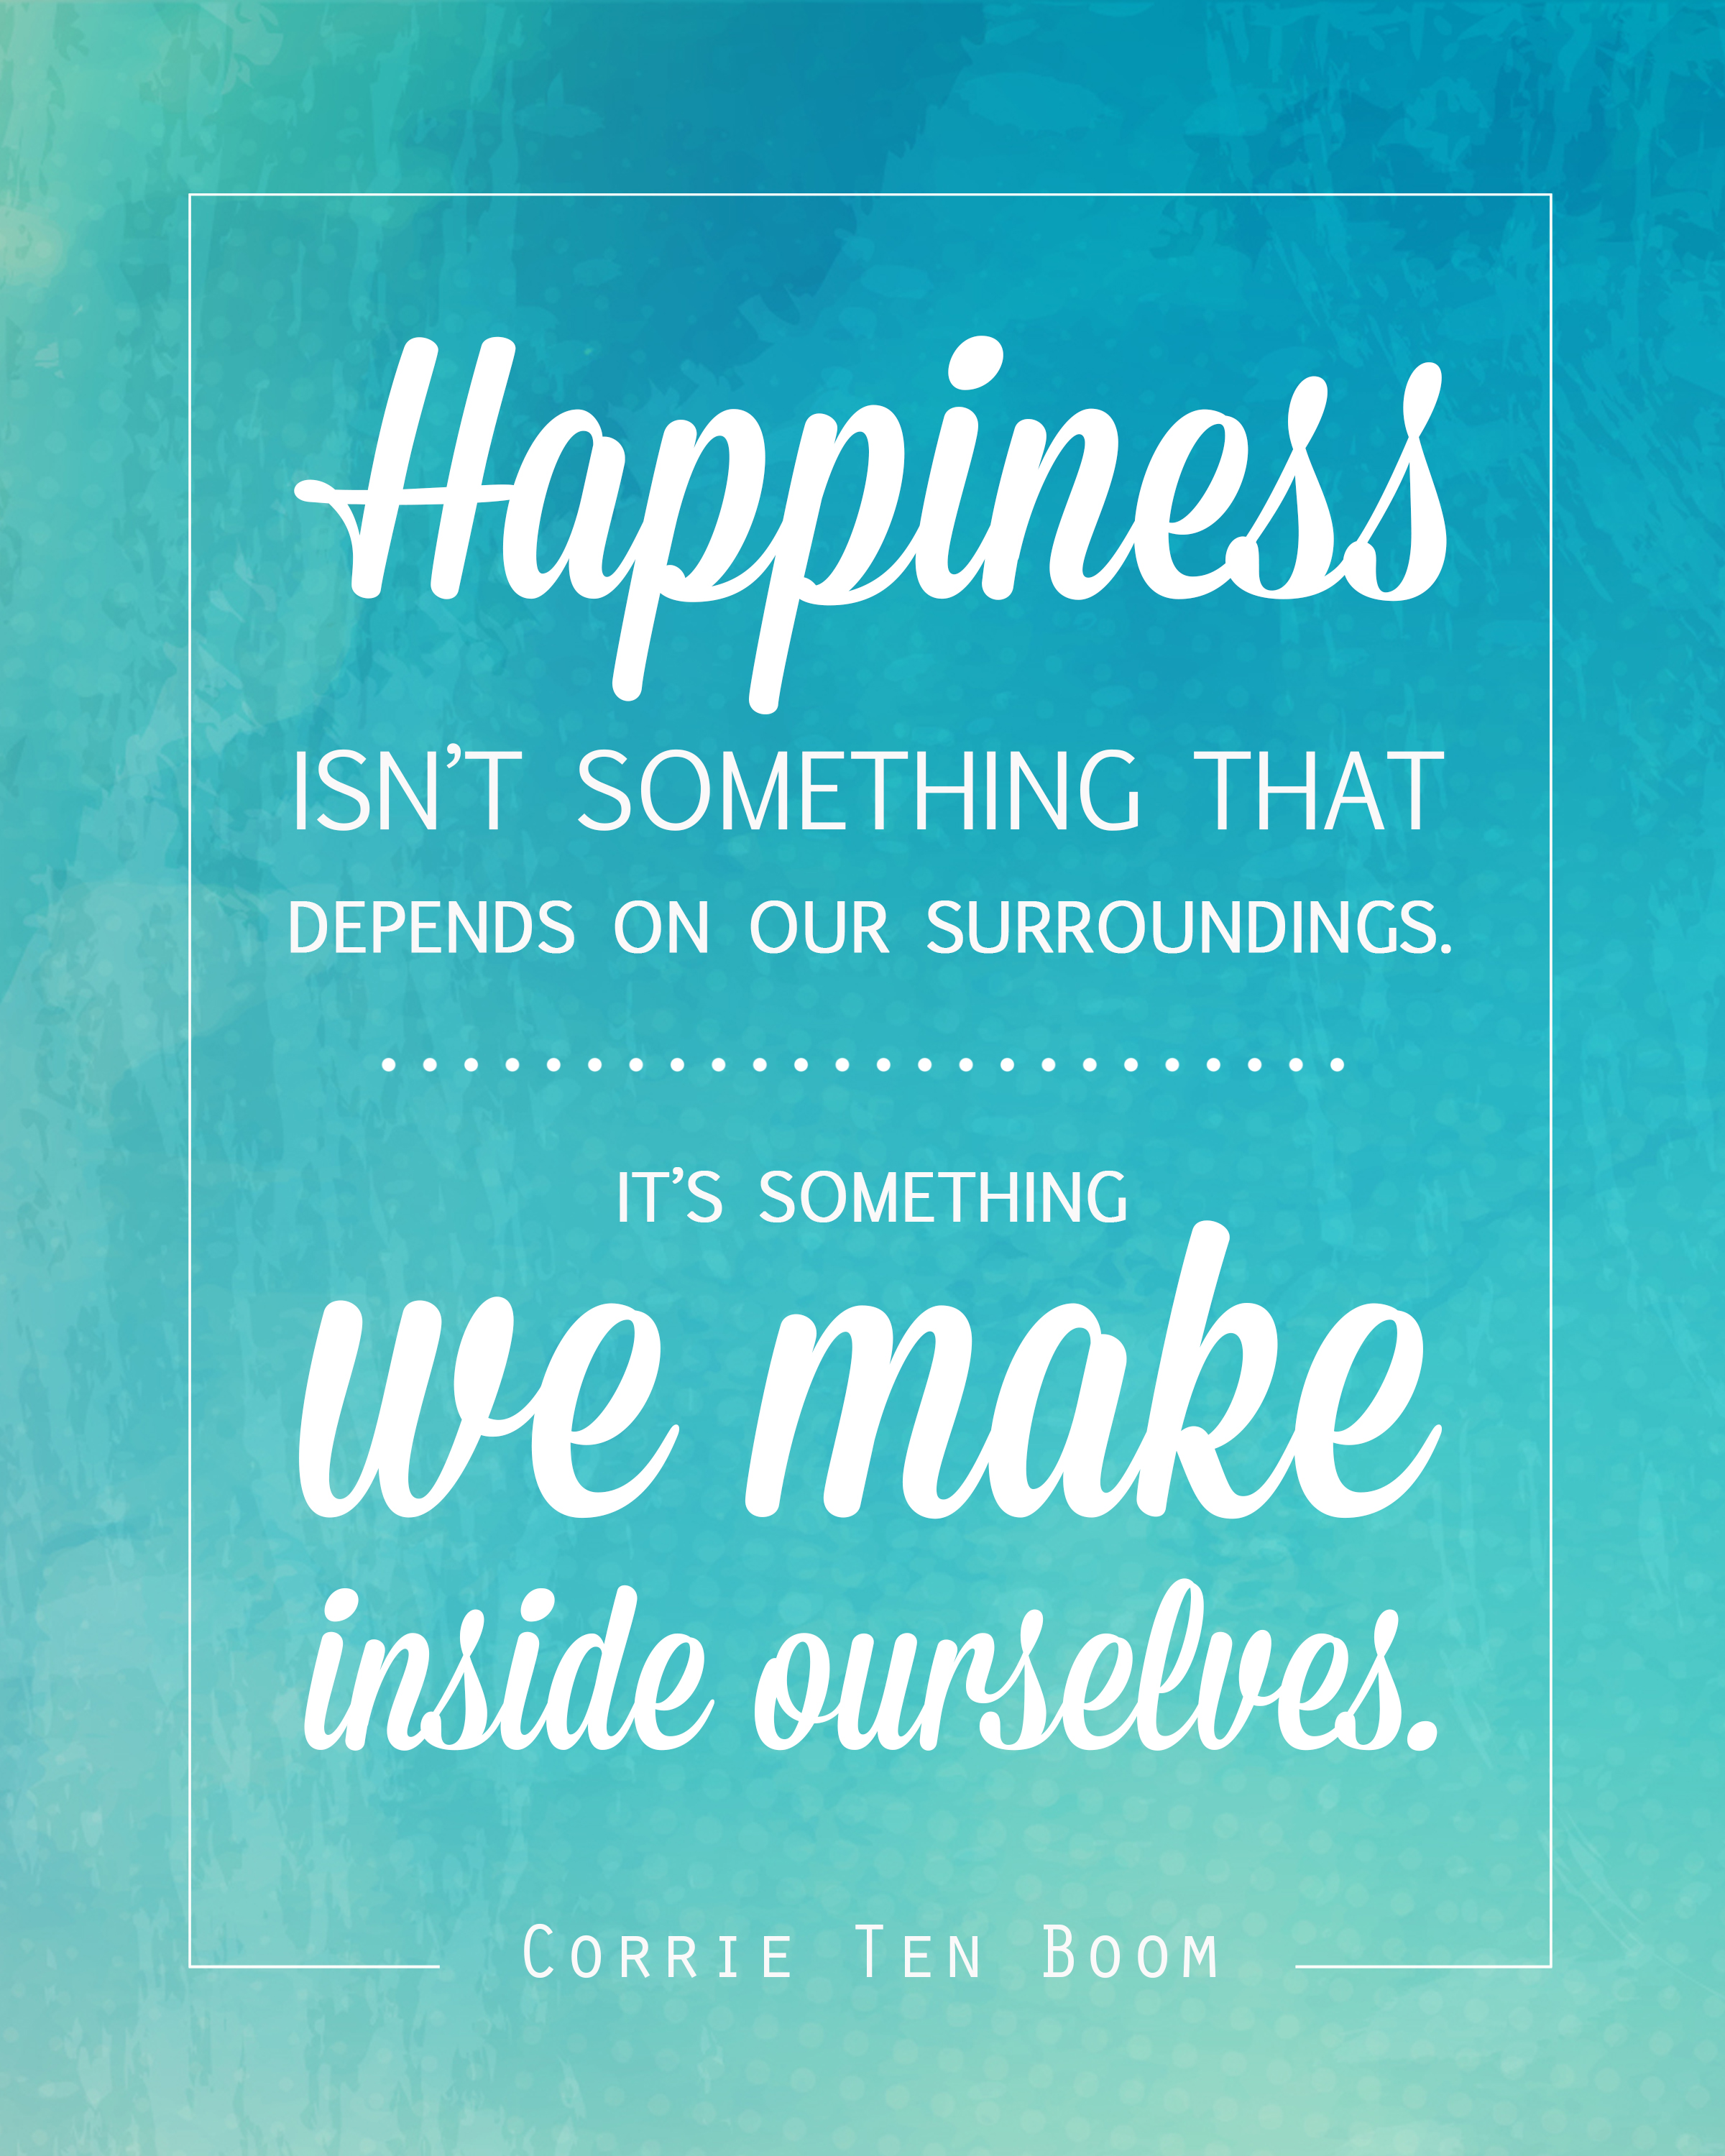 Lds Quote Wallpaper Free Quote Printable Of Corrie Ten Boom Quote About Happiness